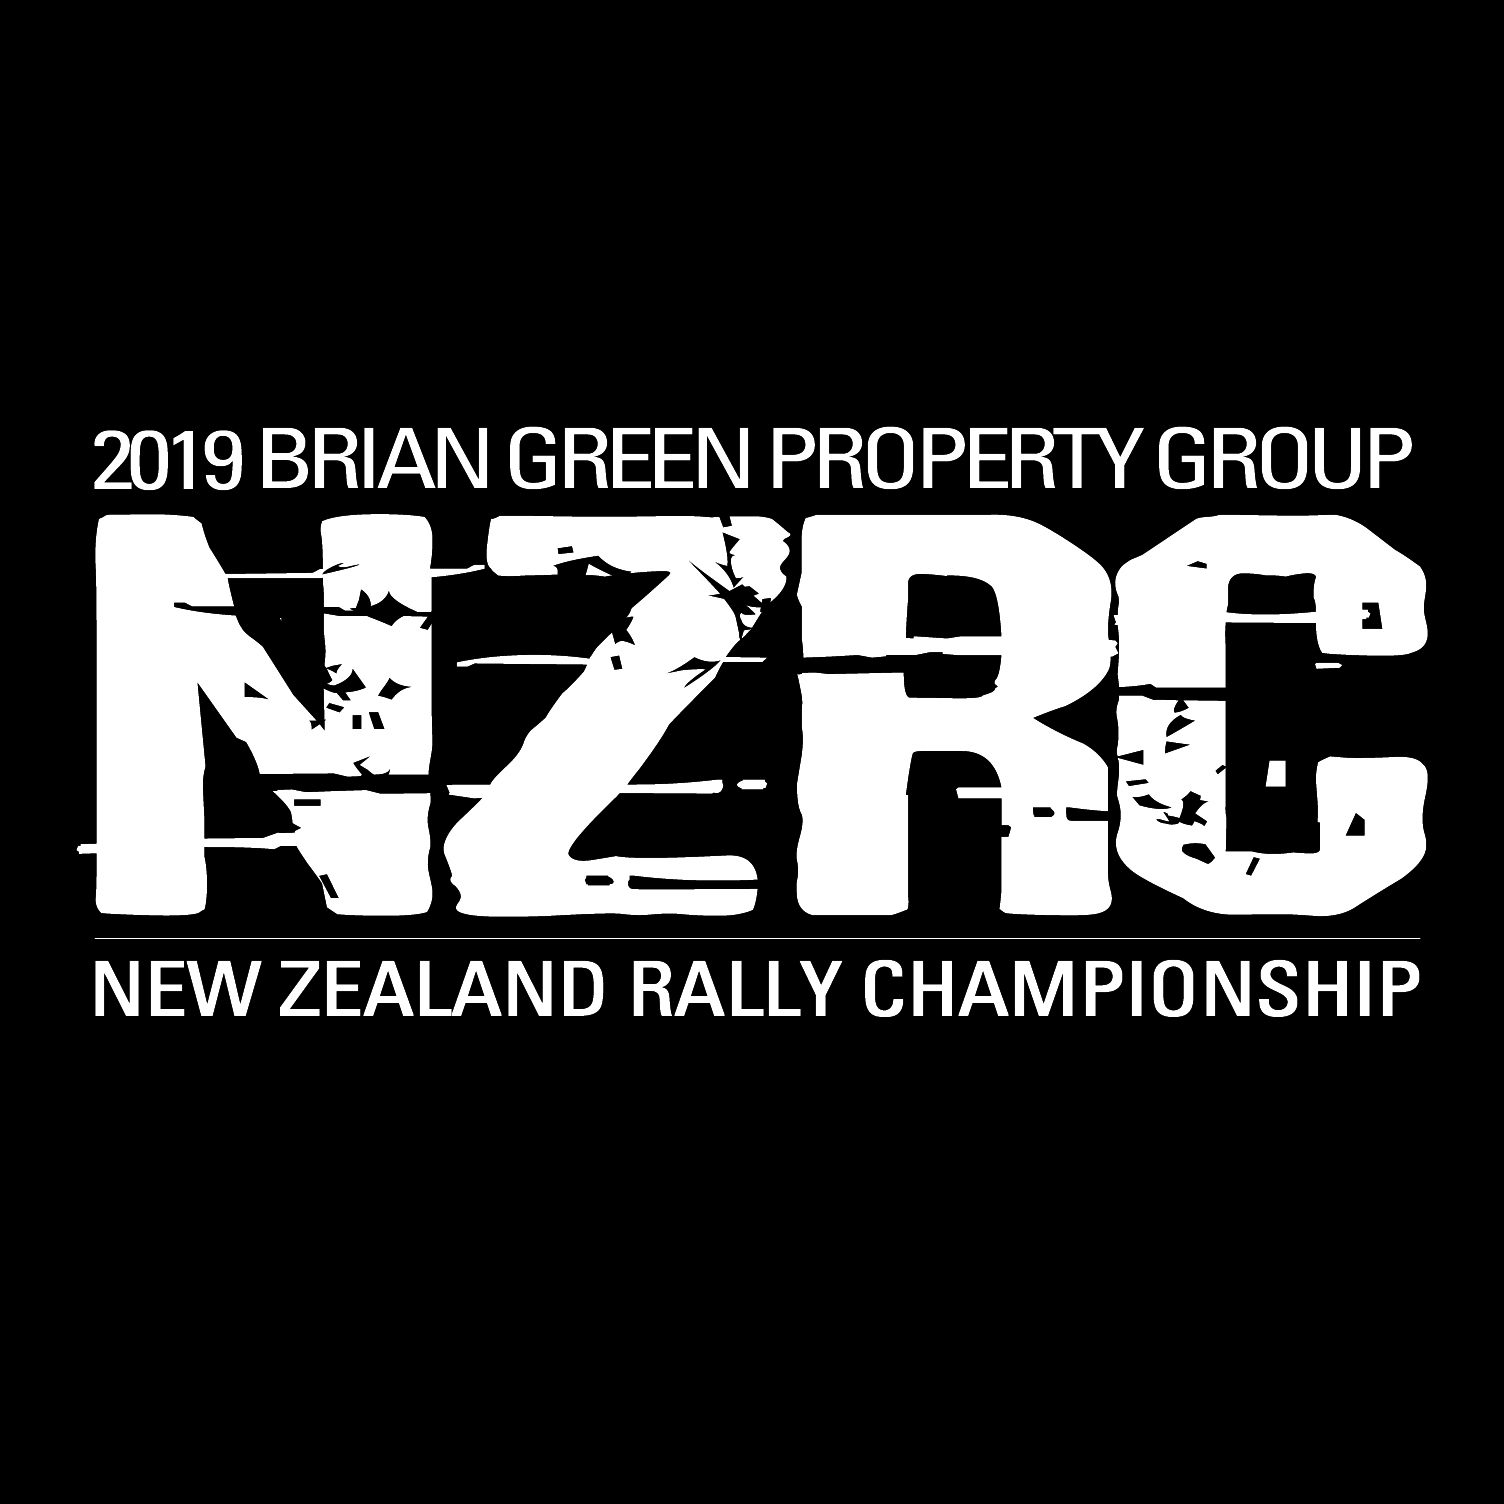 Murphy and Holden announce a two AP4 car rally program for 2017 | :: Brian Green Property Group New Zealand Rally Championship ::